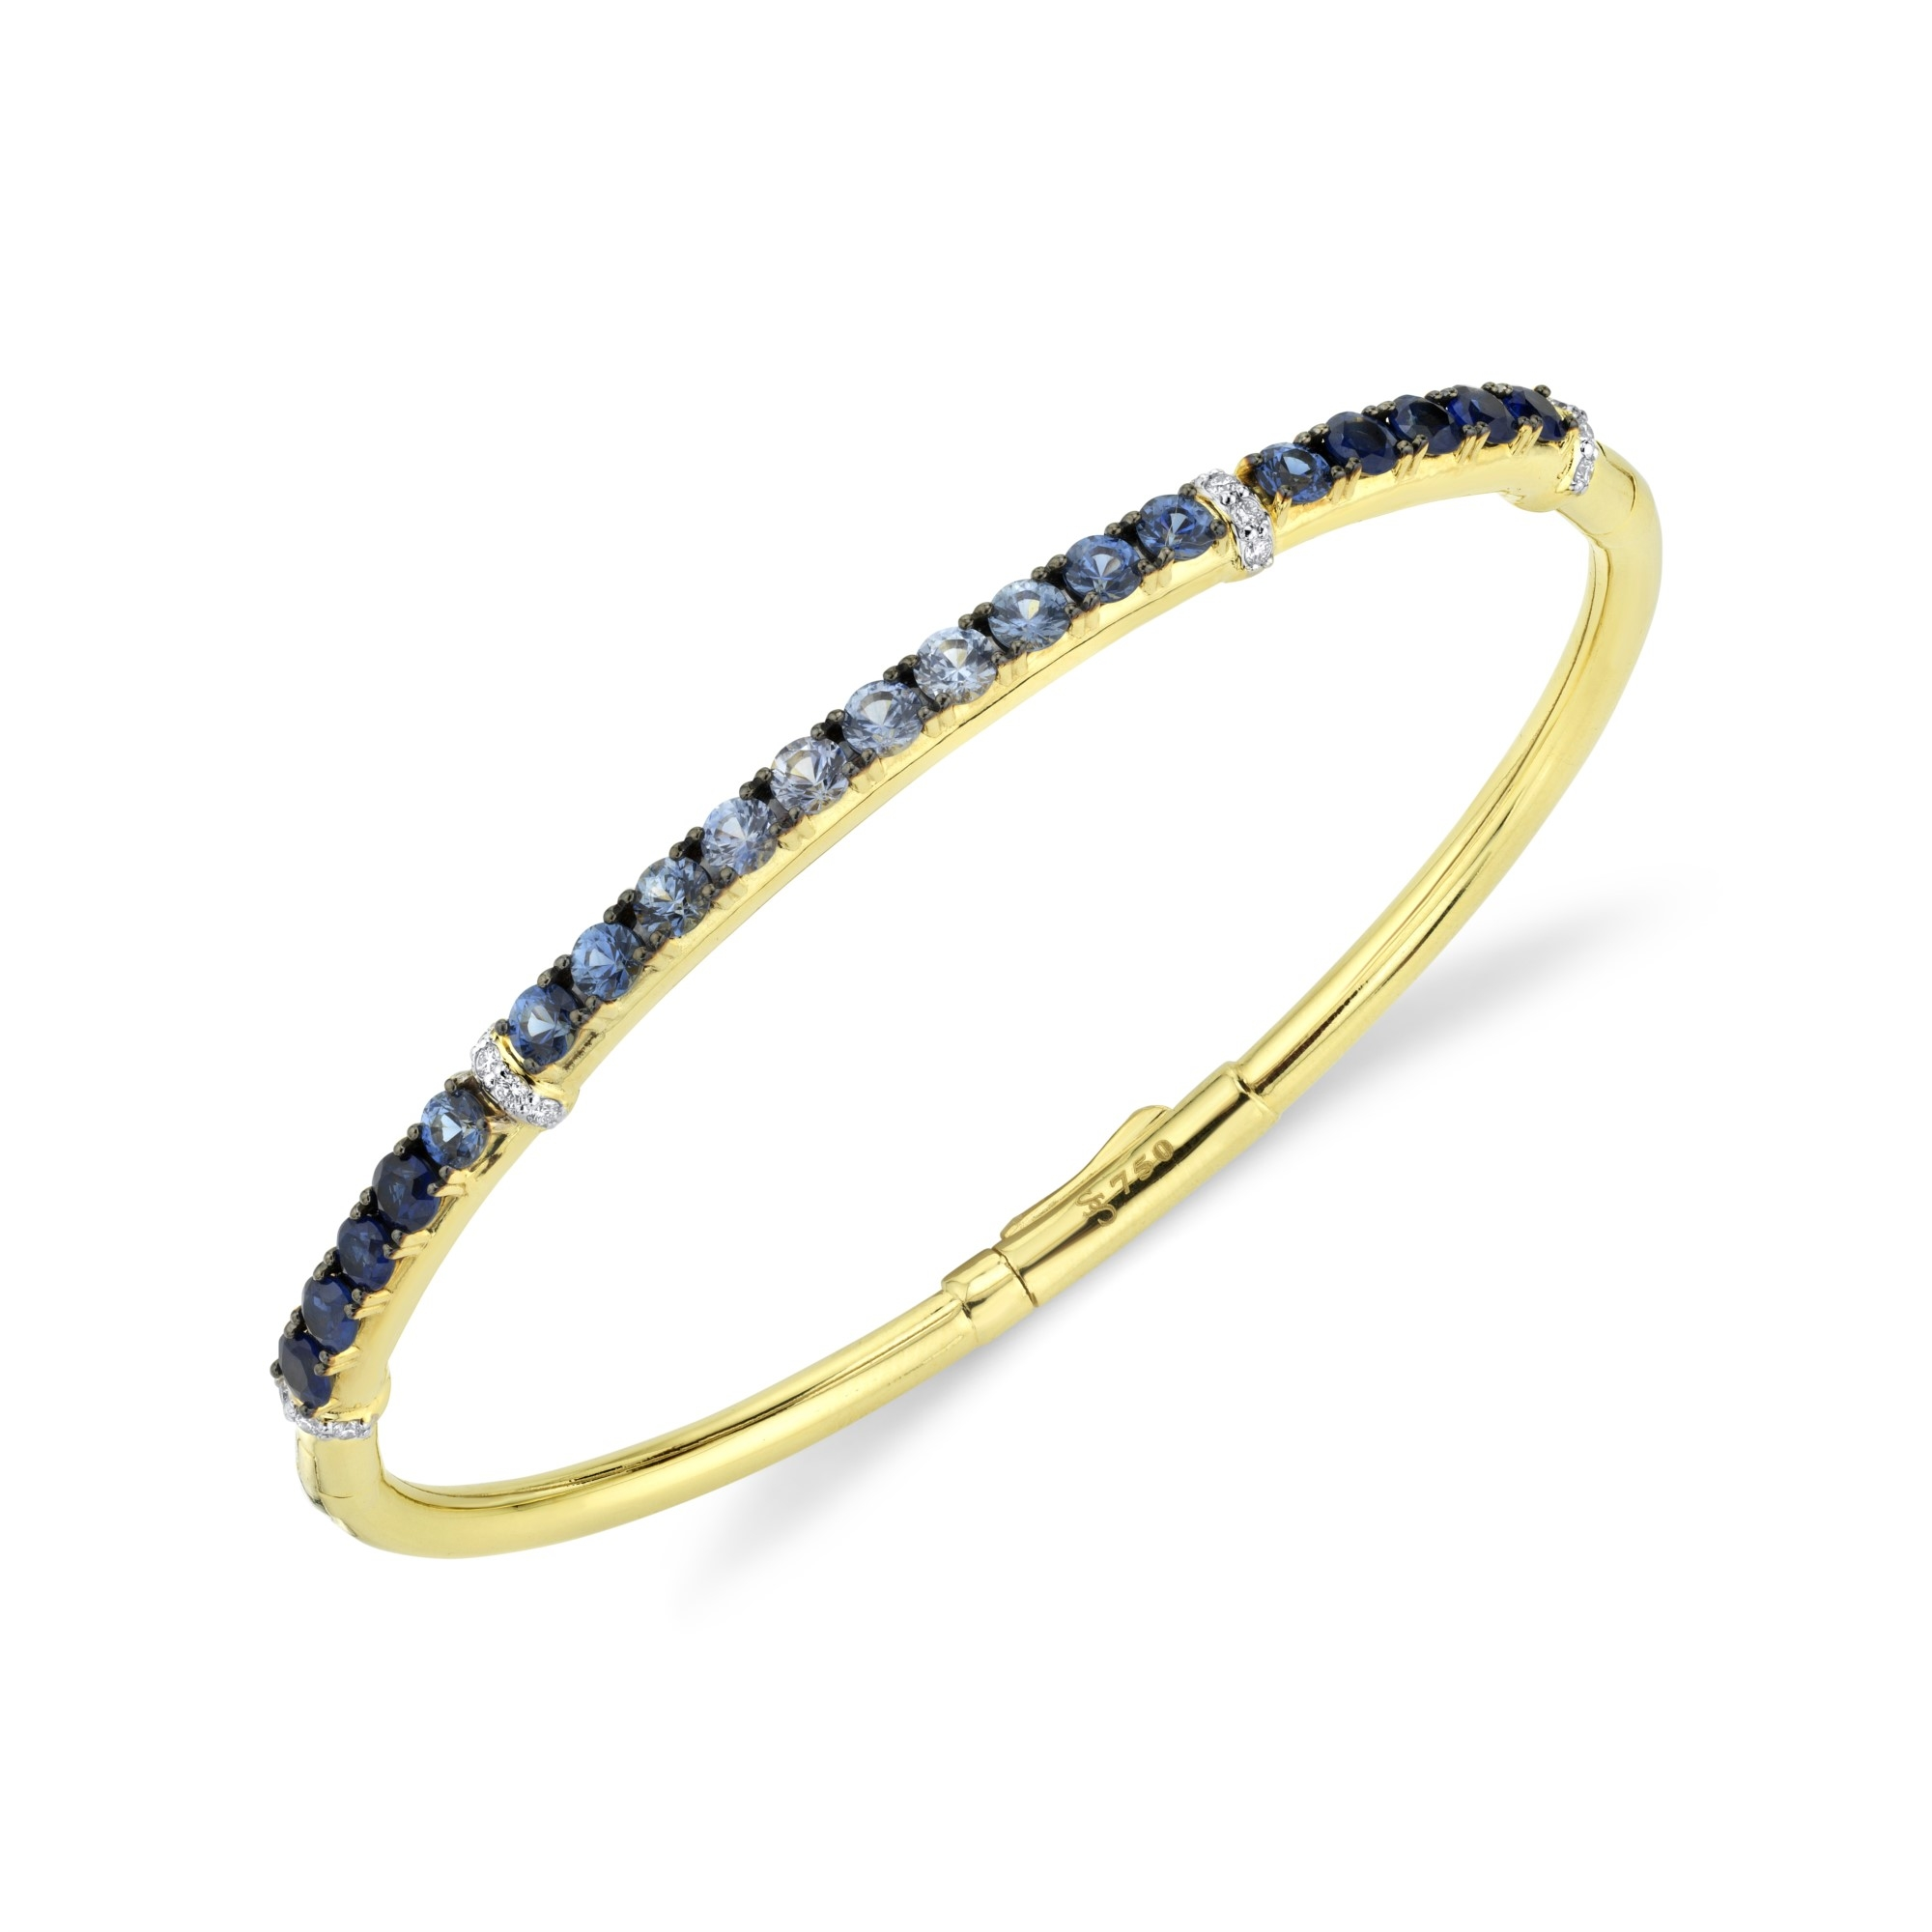 Sloane Street 18K Yellow Gold .16cts  Diamonds Gold Bangle with Stones B033E-GBSBR-A-WDCB-Y